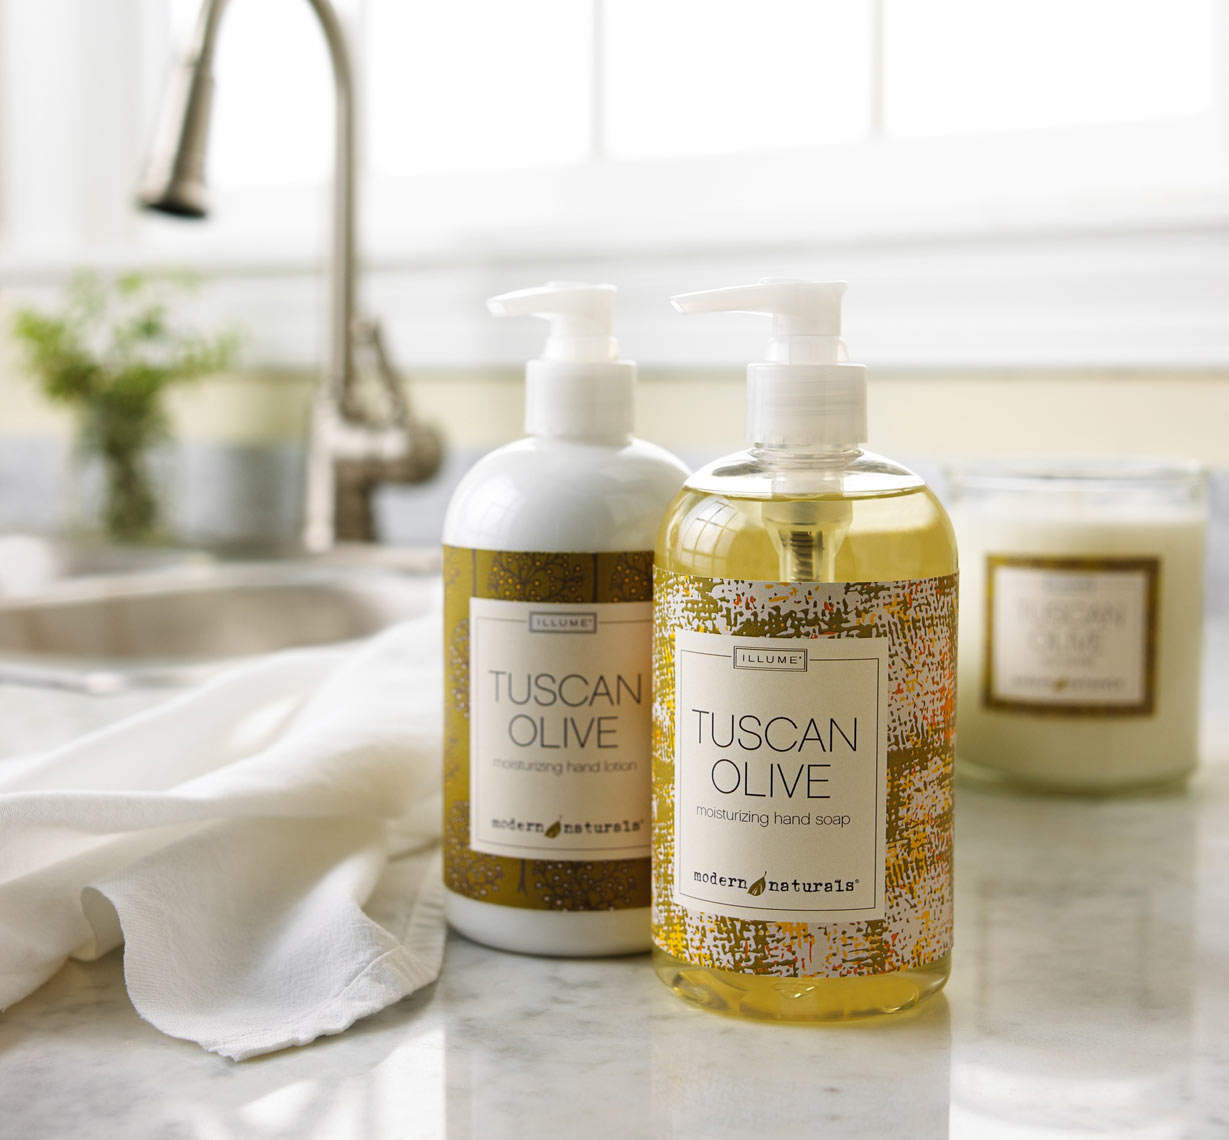 Tuscan Olive/hand soap//product photography